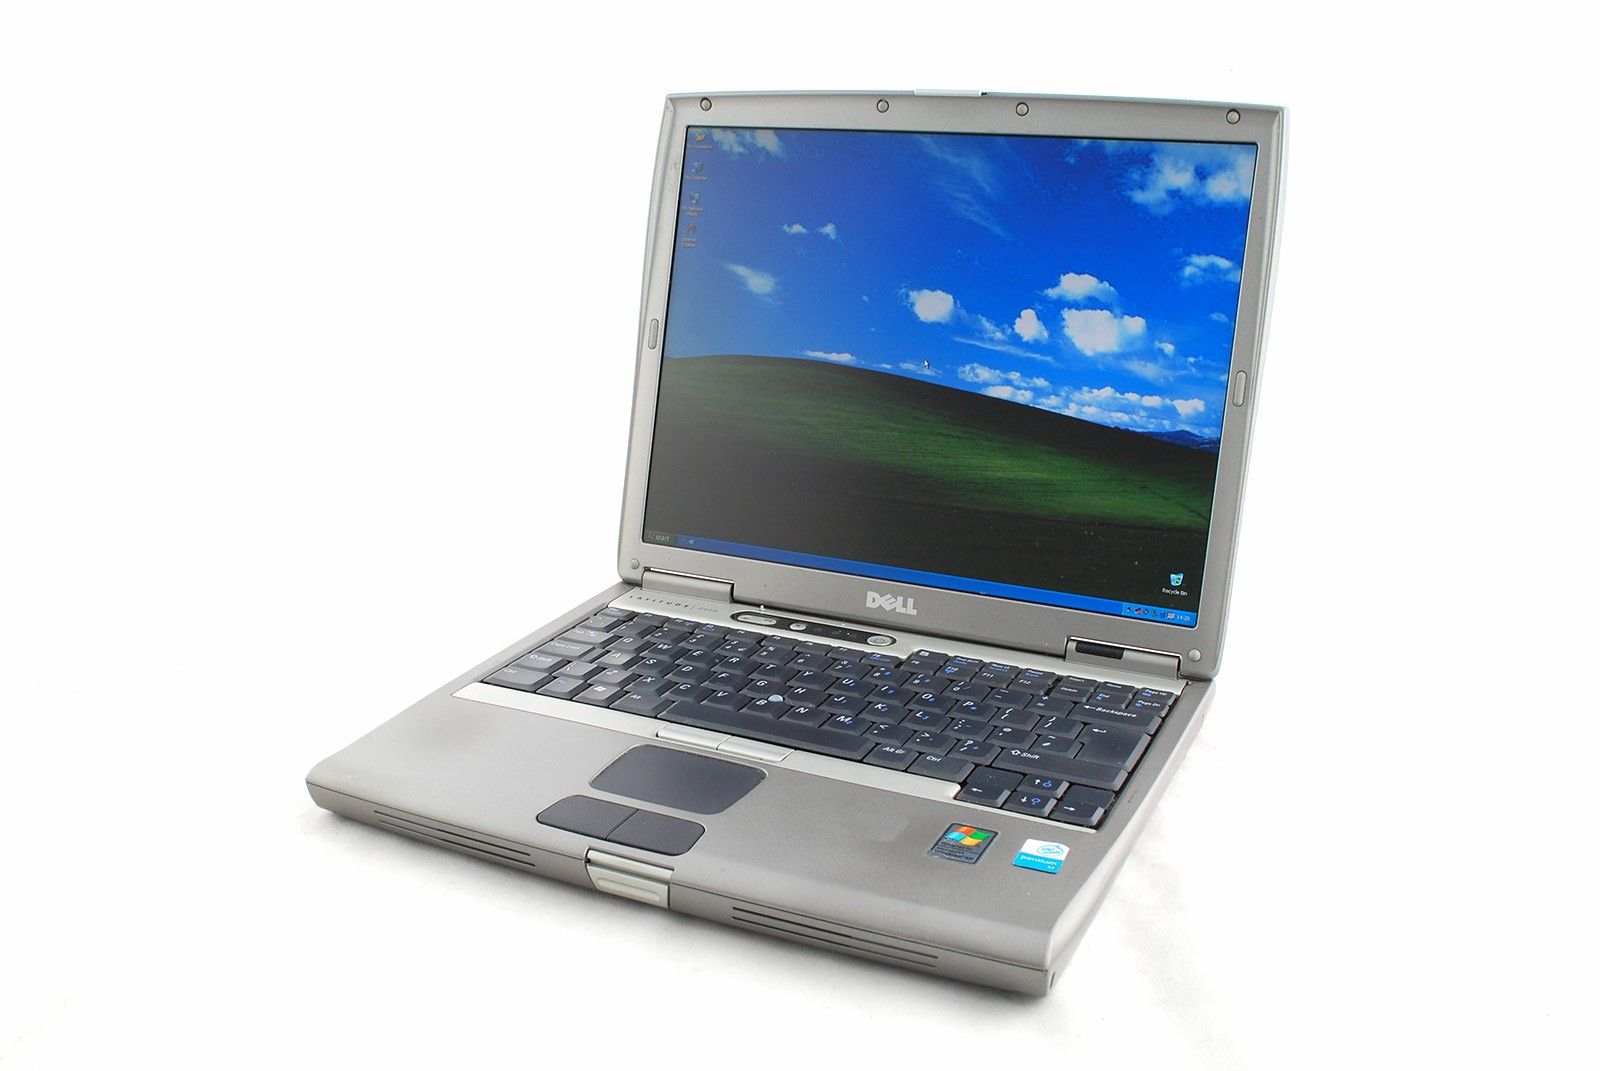 Vga Driver For Dell Latitude D600 Free Download